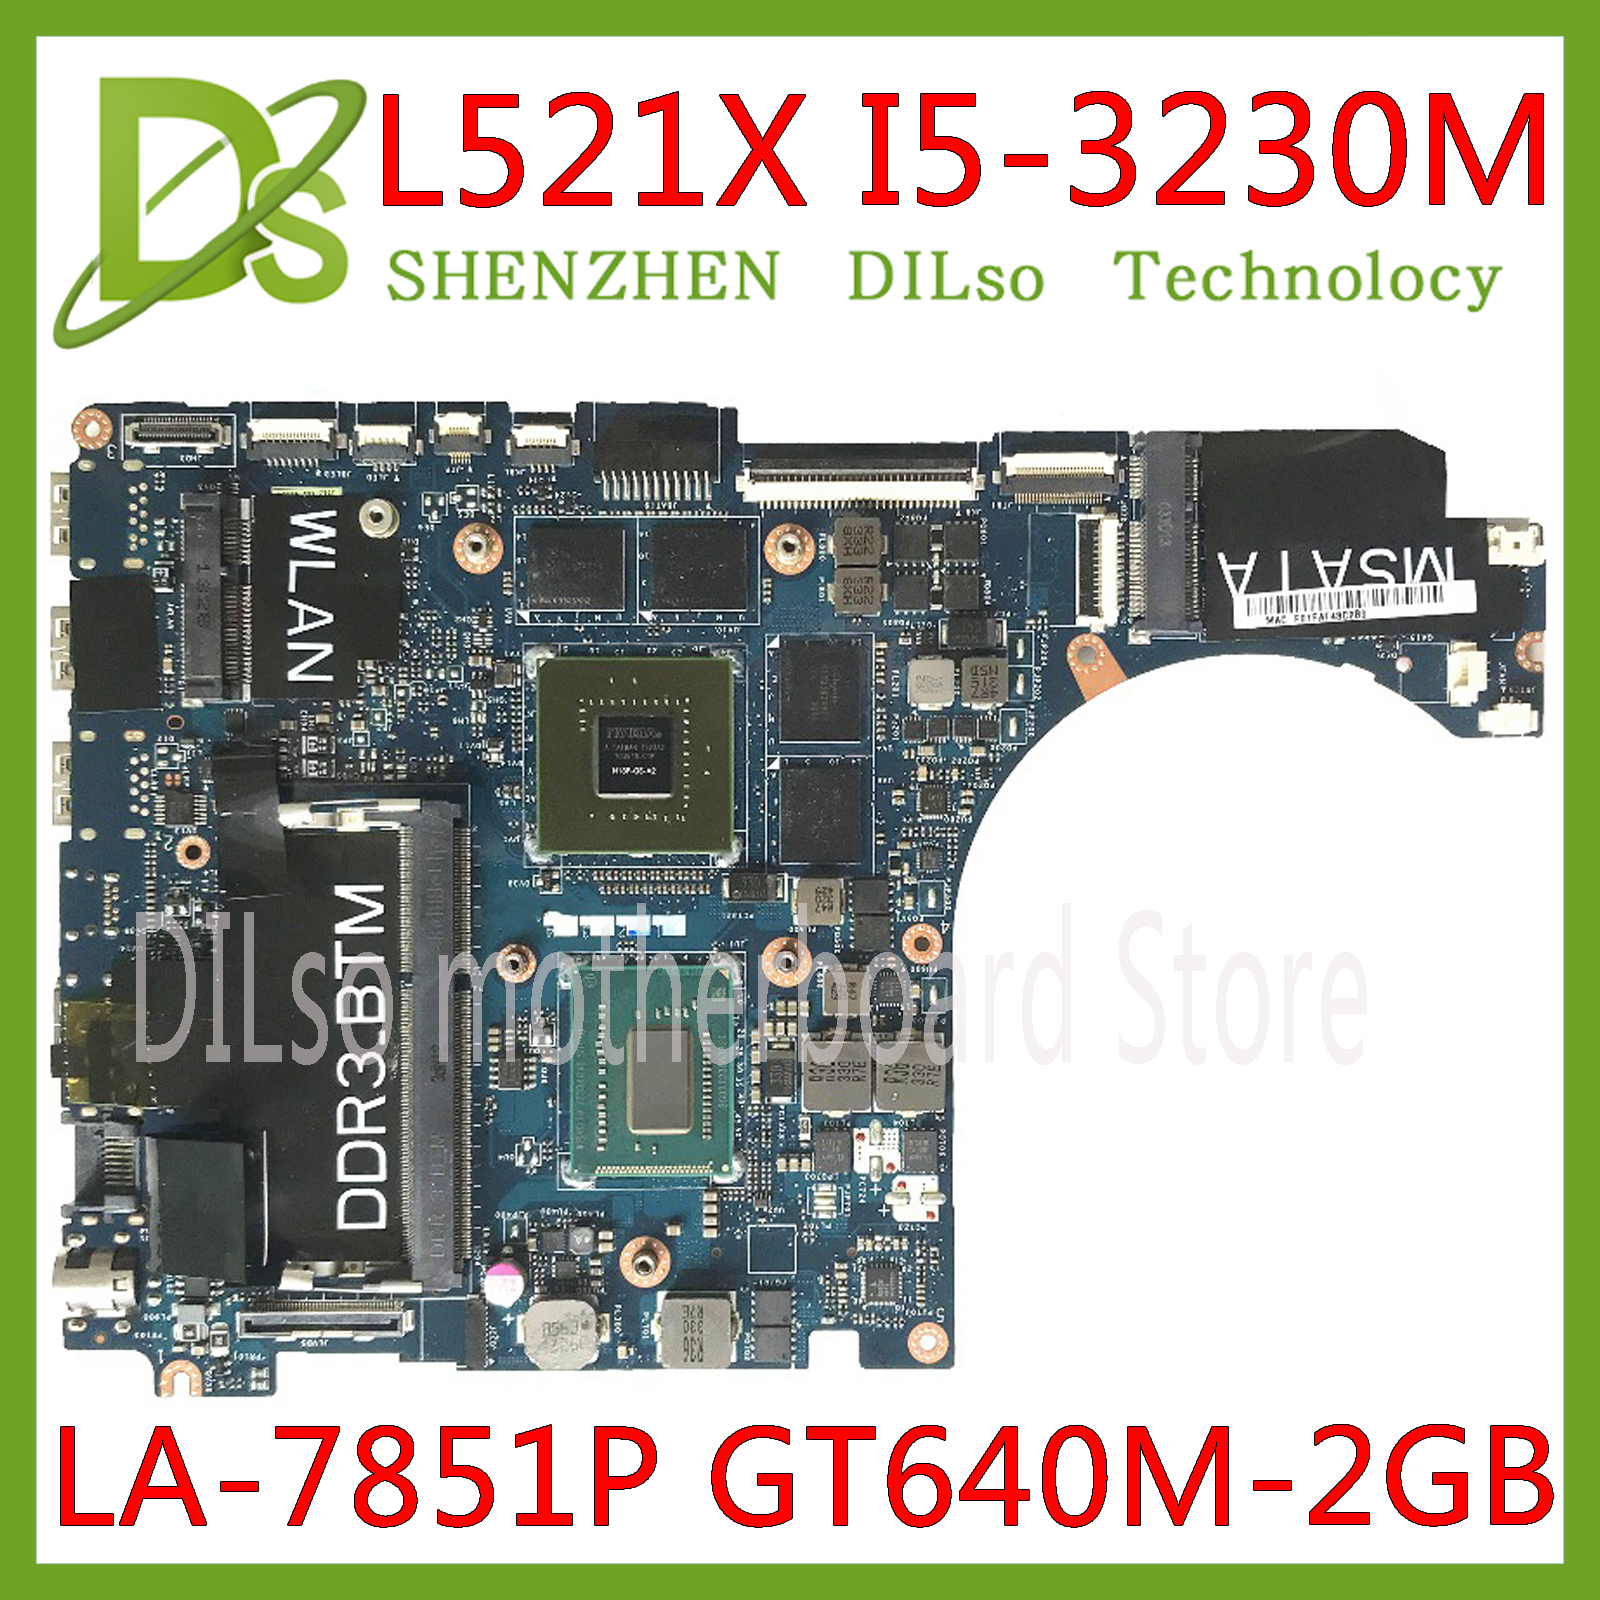 KEFU QBL00 LA-7851P motherboard FOR Dell XPS 15 L521X Laptop Motherboard <font><b>I5</b></font>-<font><b>3230M</b></font> DDR3L GT640M 2GB Fully Tested 100% work image